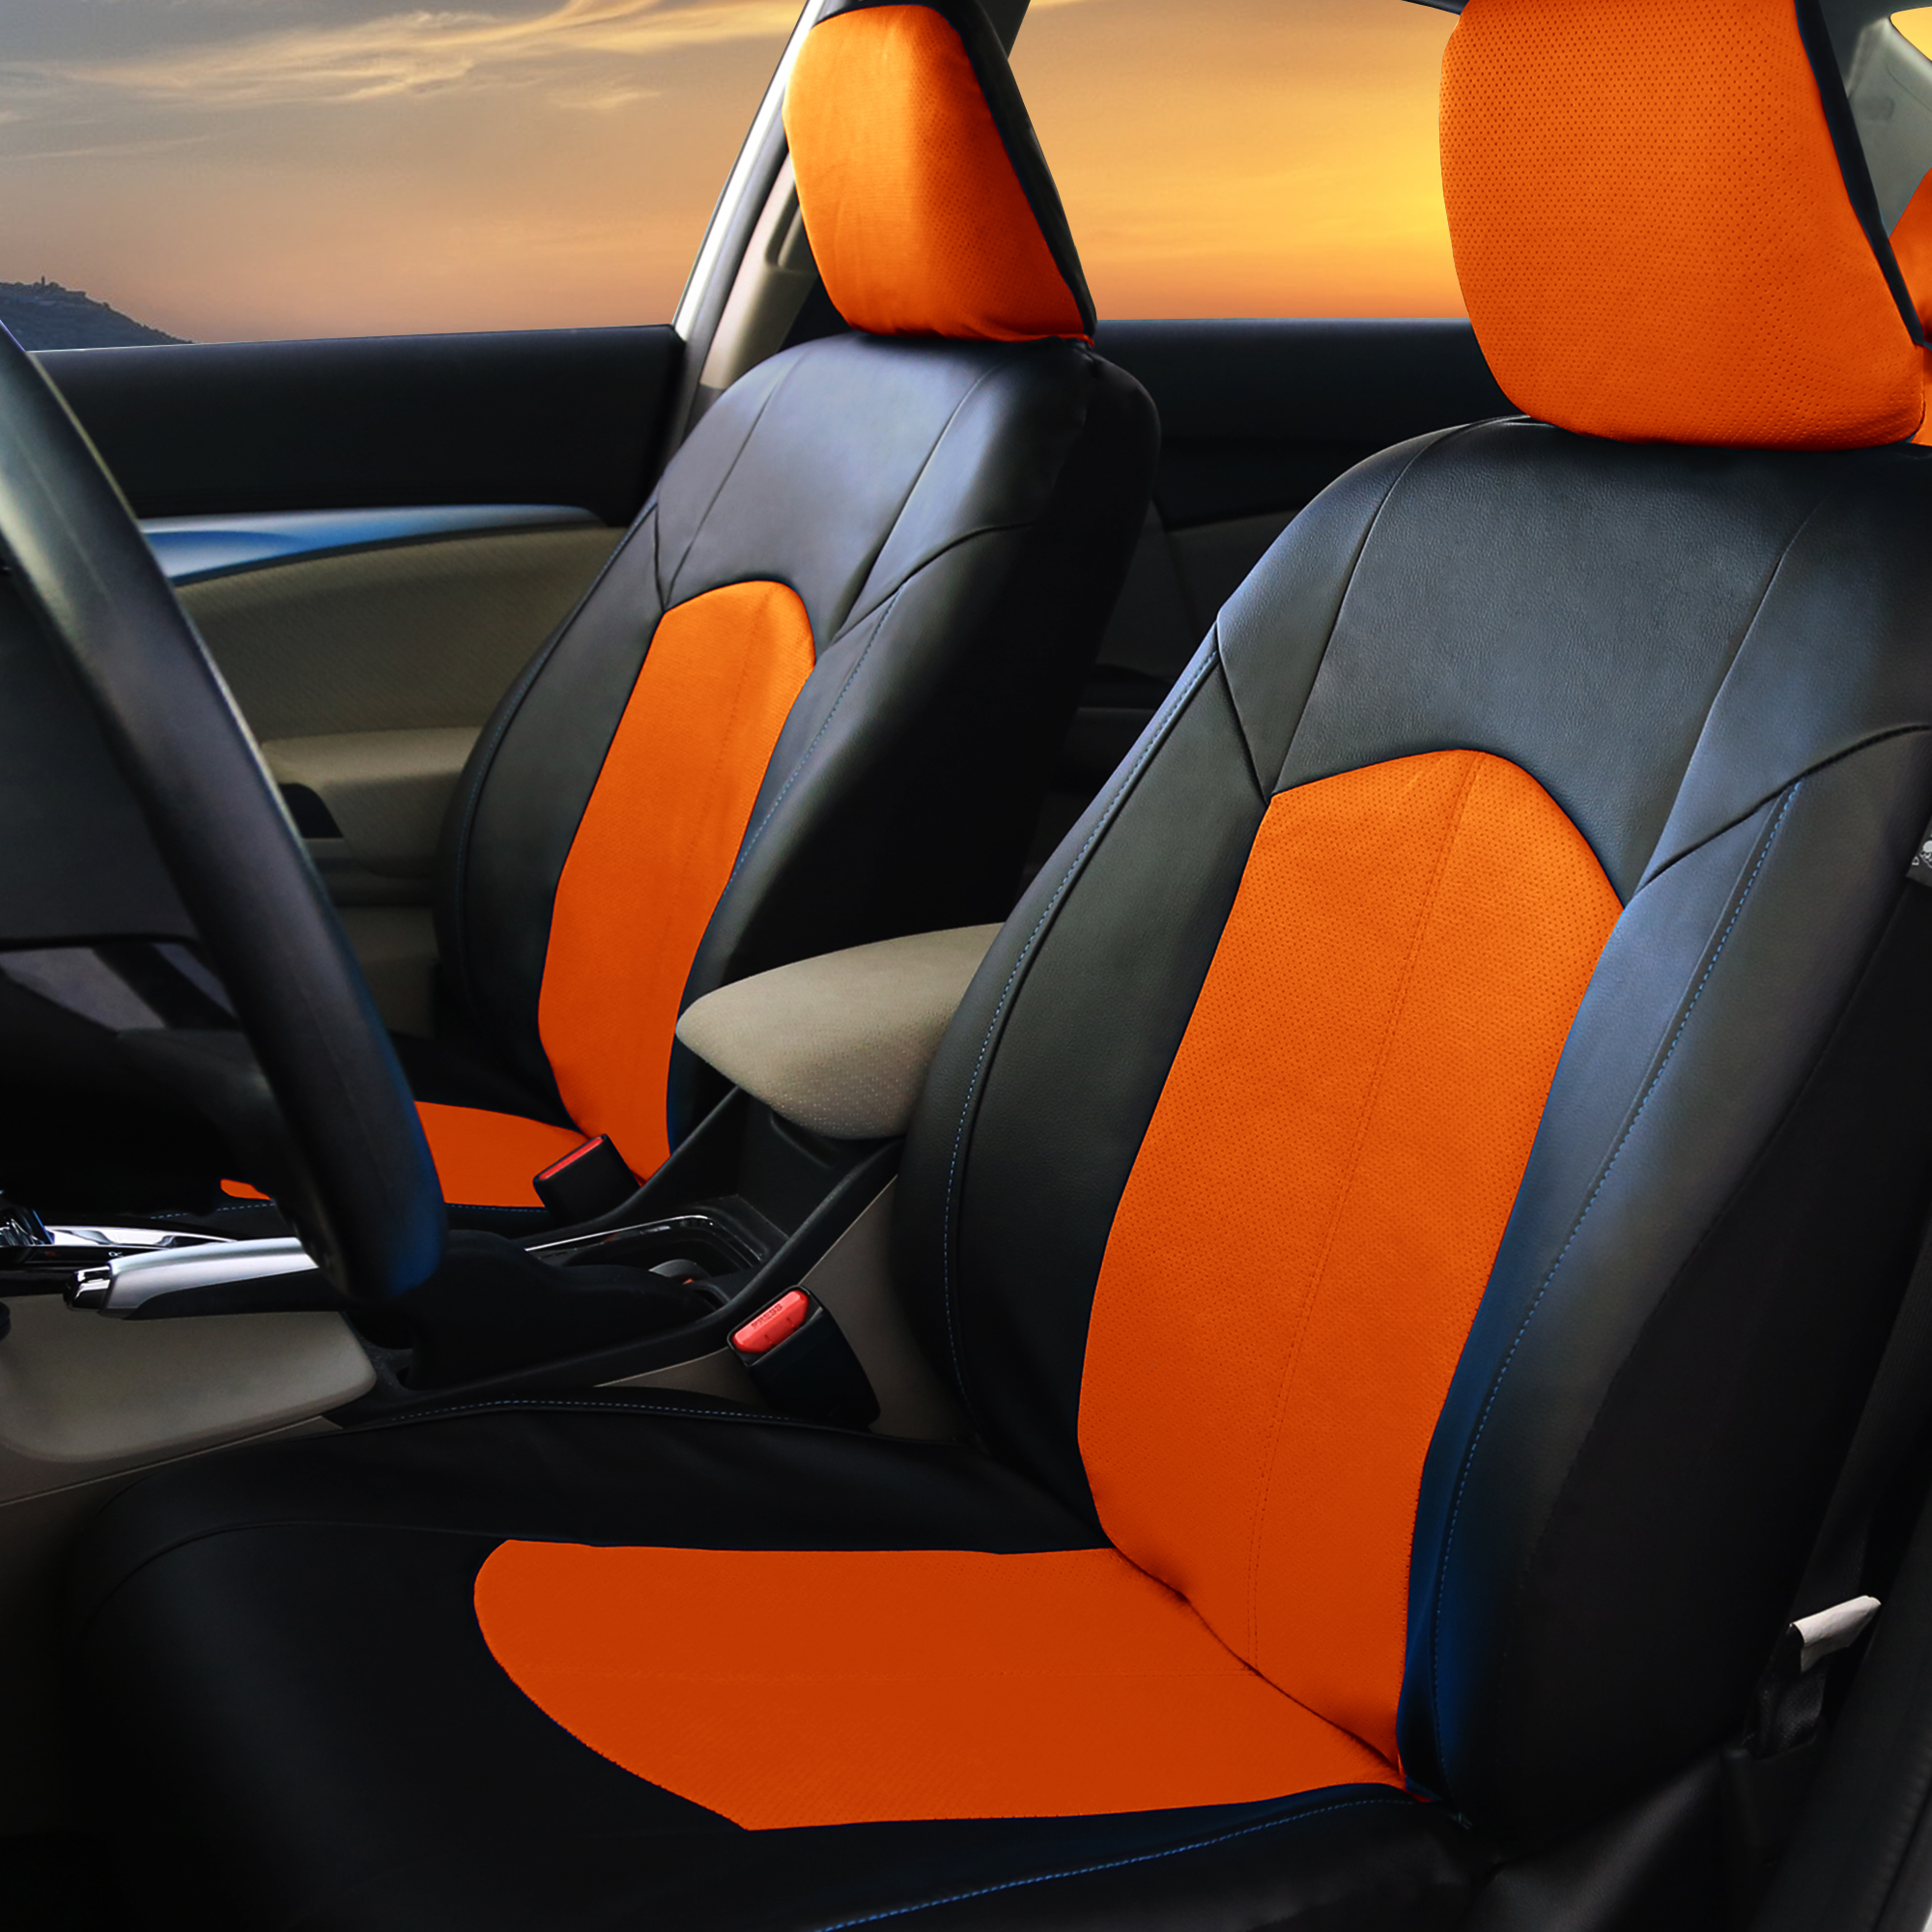 pu leather car seat covers for auto orange black 5 headrests beige floor mat ebay. Black Bedroom Furniture Sets. Home Design Ideas